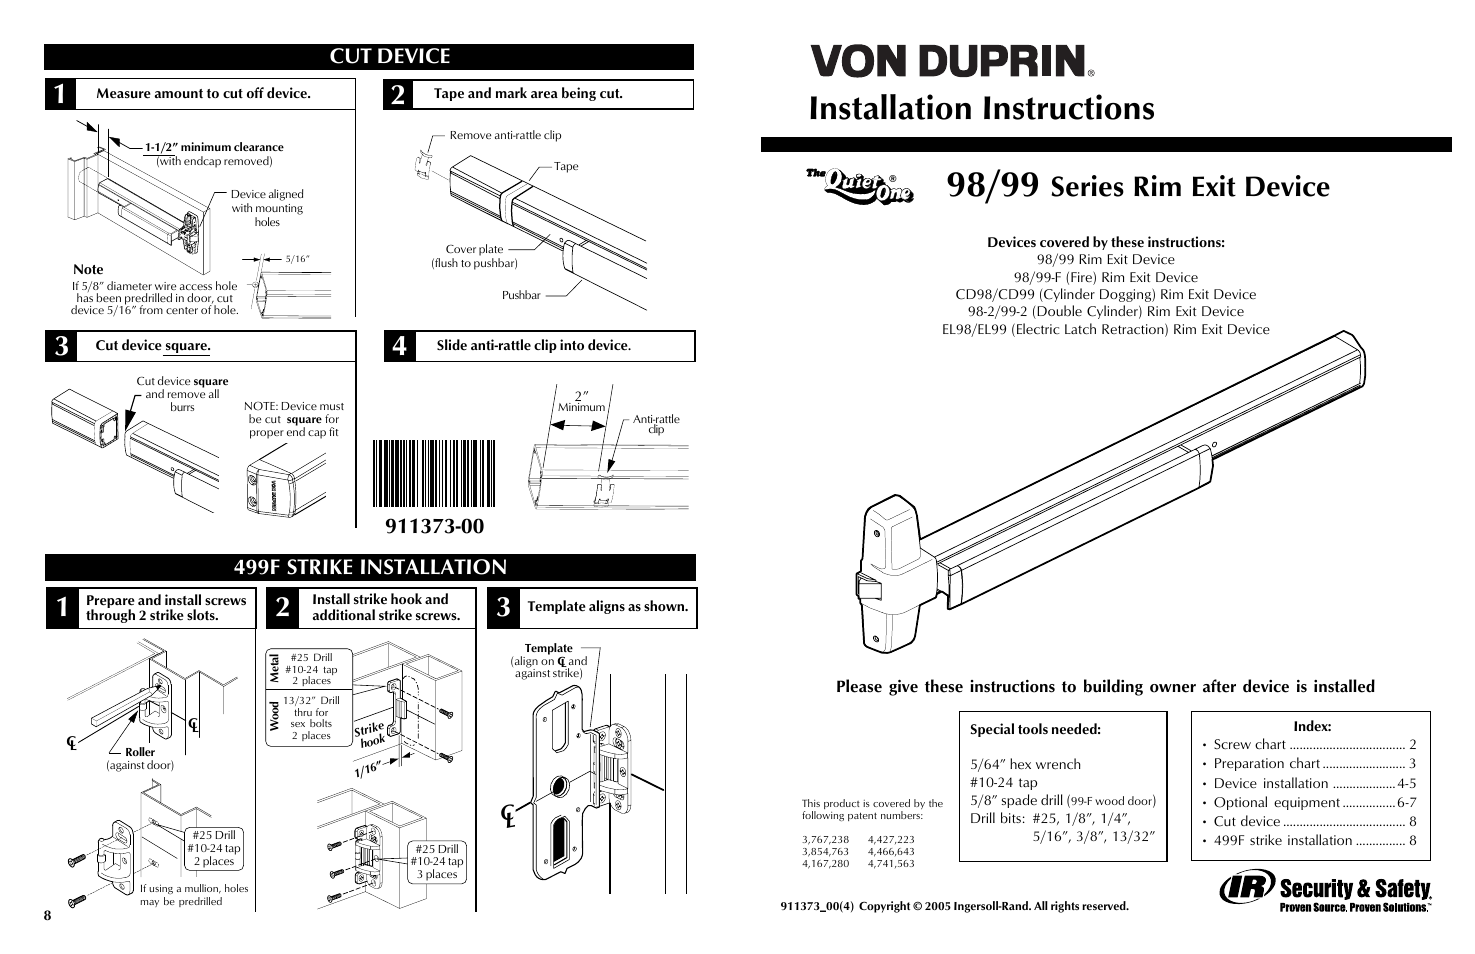 Factory Direct Hardware Von Duprin 98eo User Manual 4